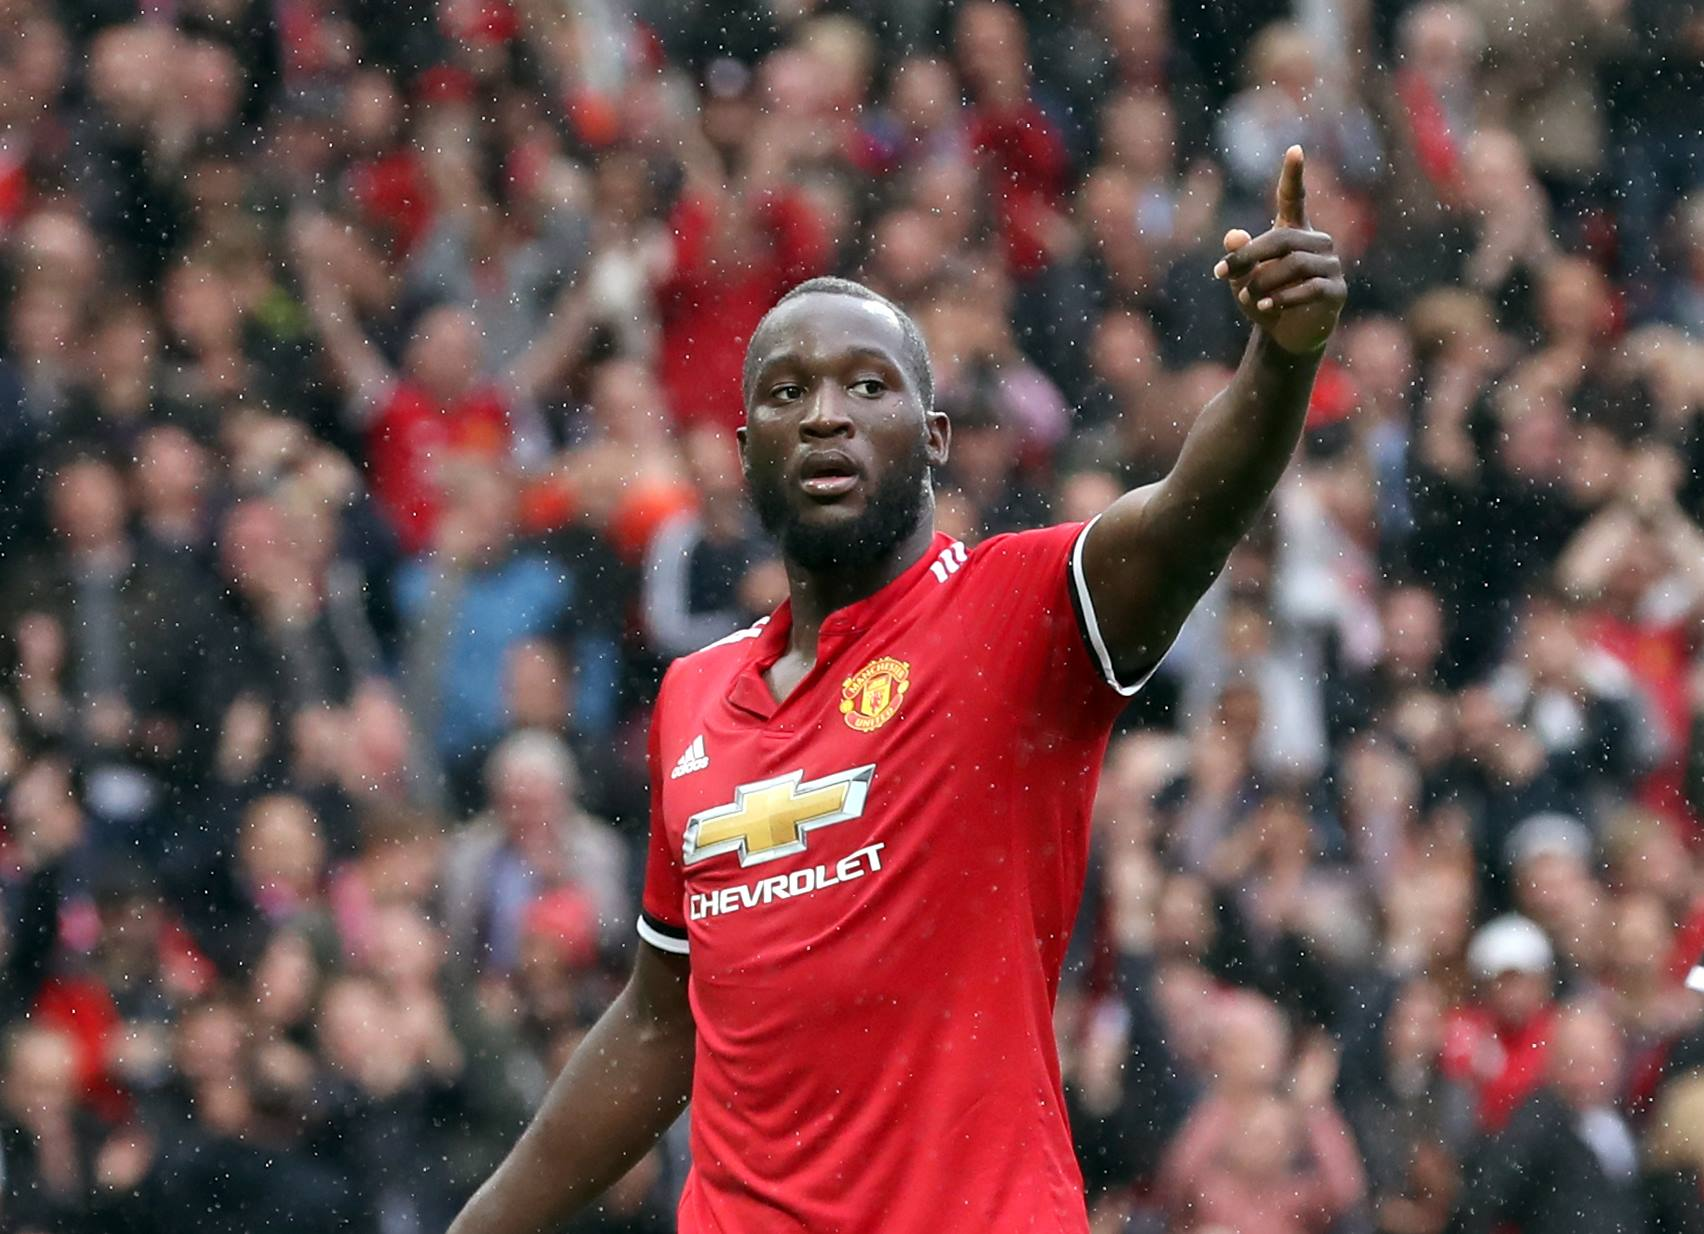 Mourinho: Lukaku can't rest until Ibrahimovic returns